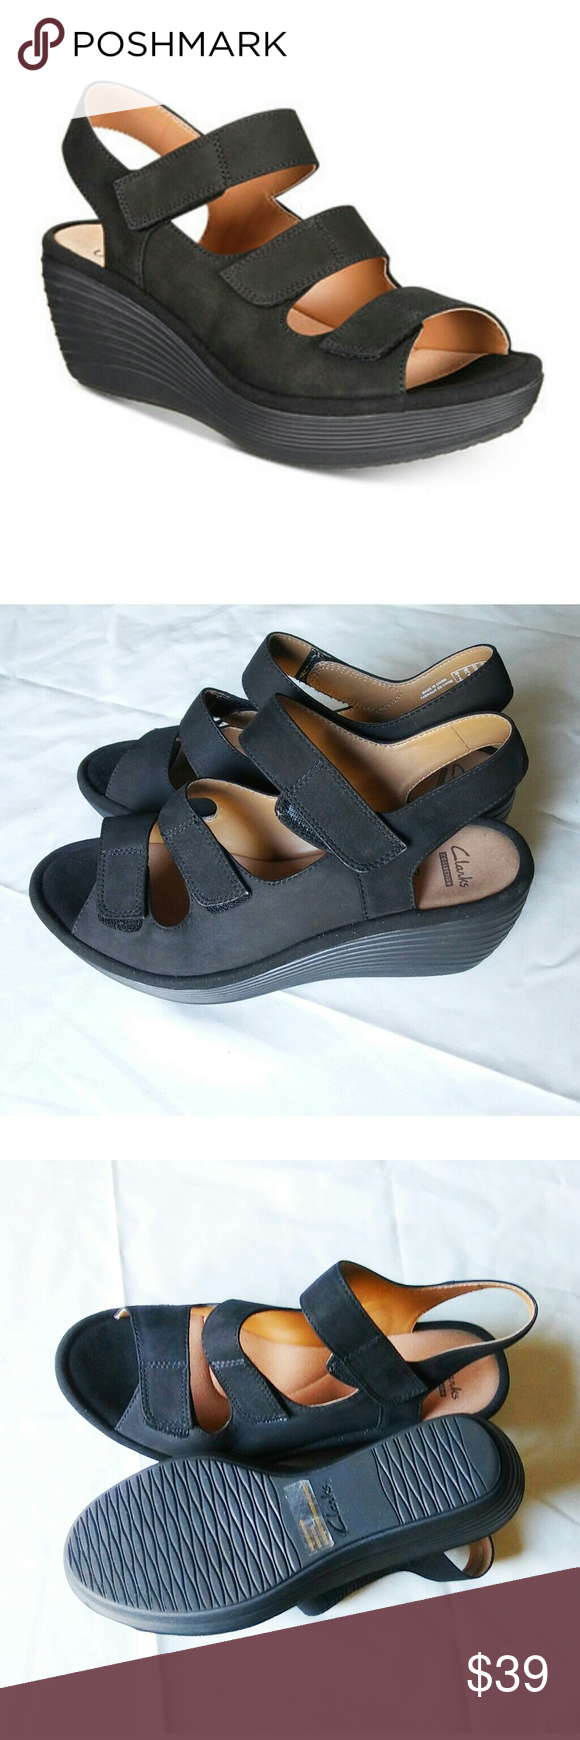 feb0e7bb80e Clarks Black Reedly Juno Wedge Sandal Size.7.5 Stay comfortable in style  with these like